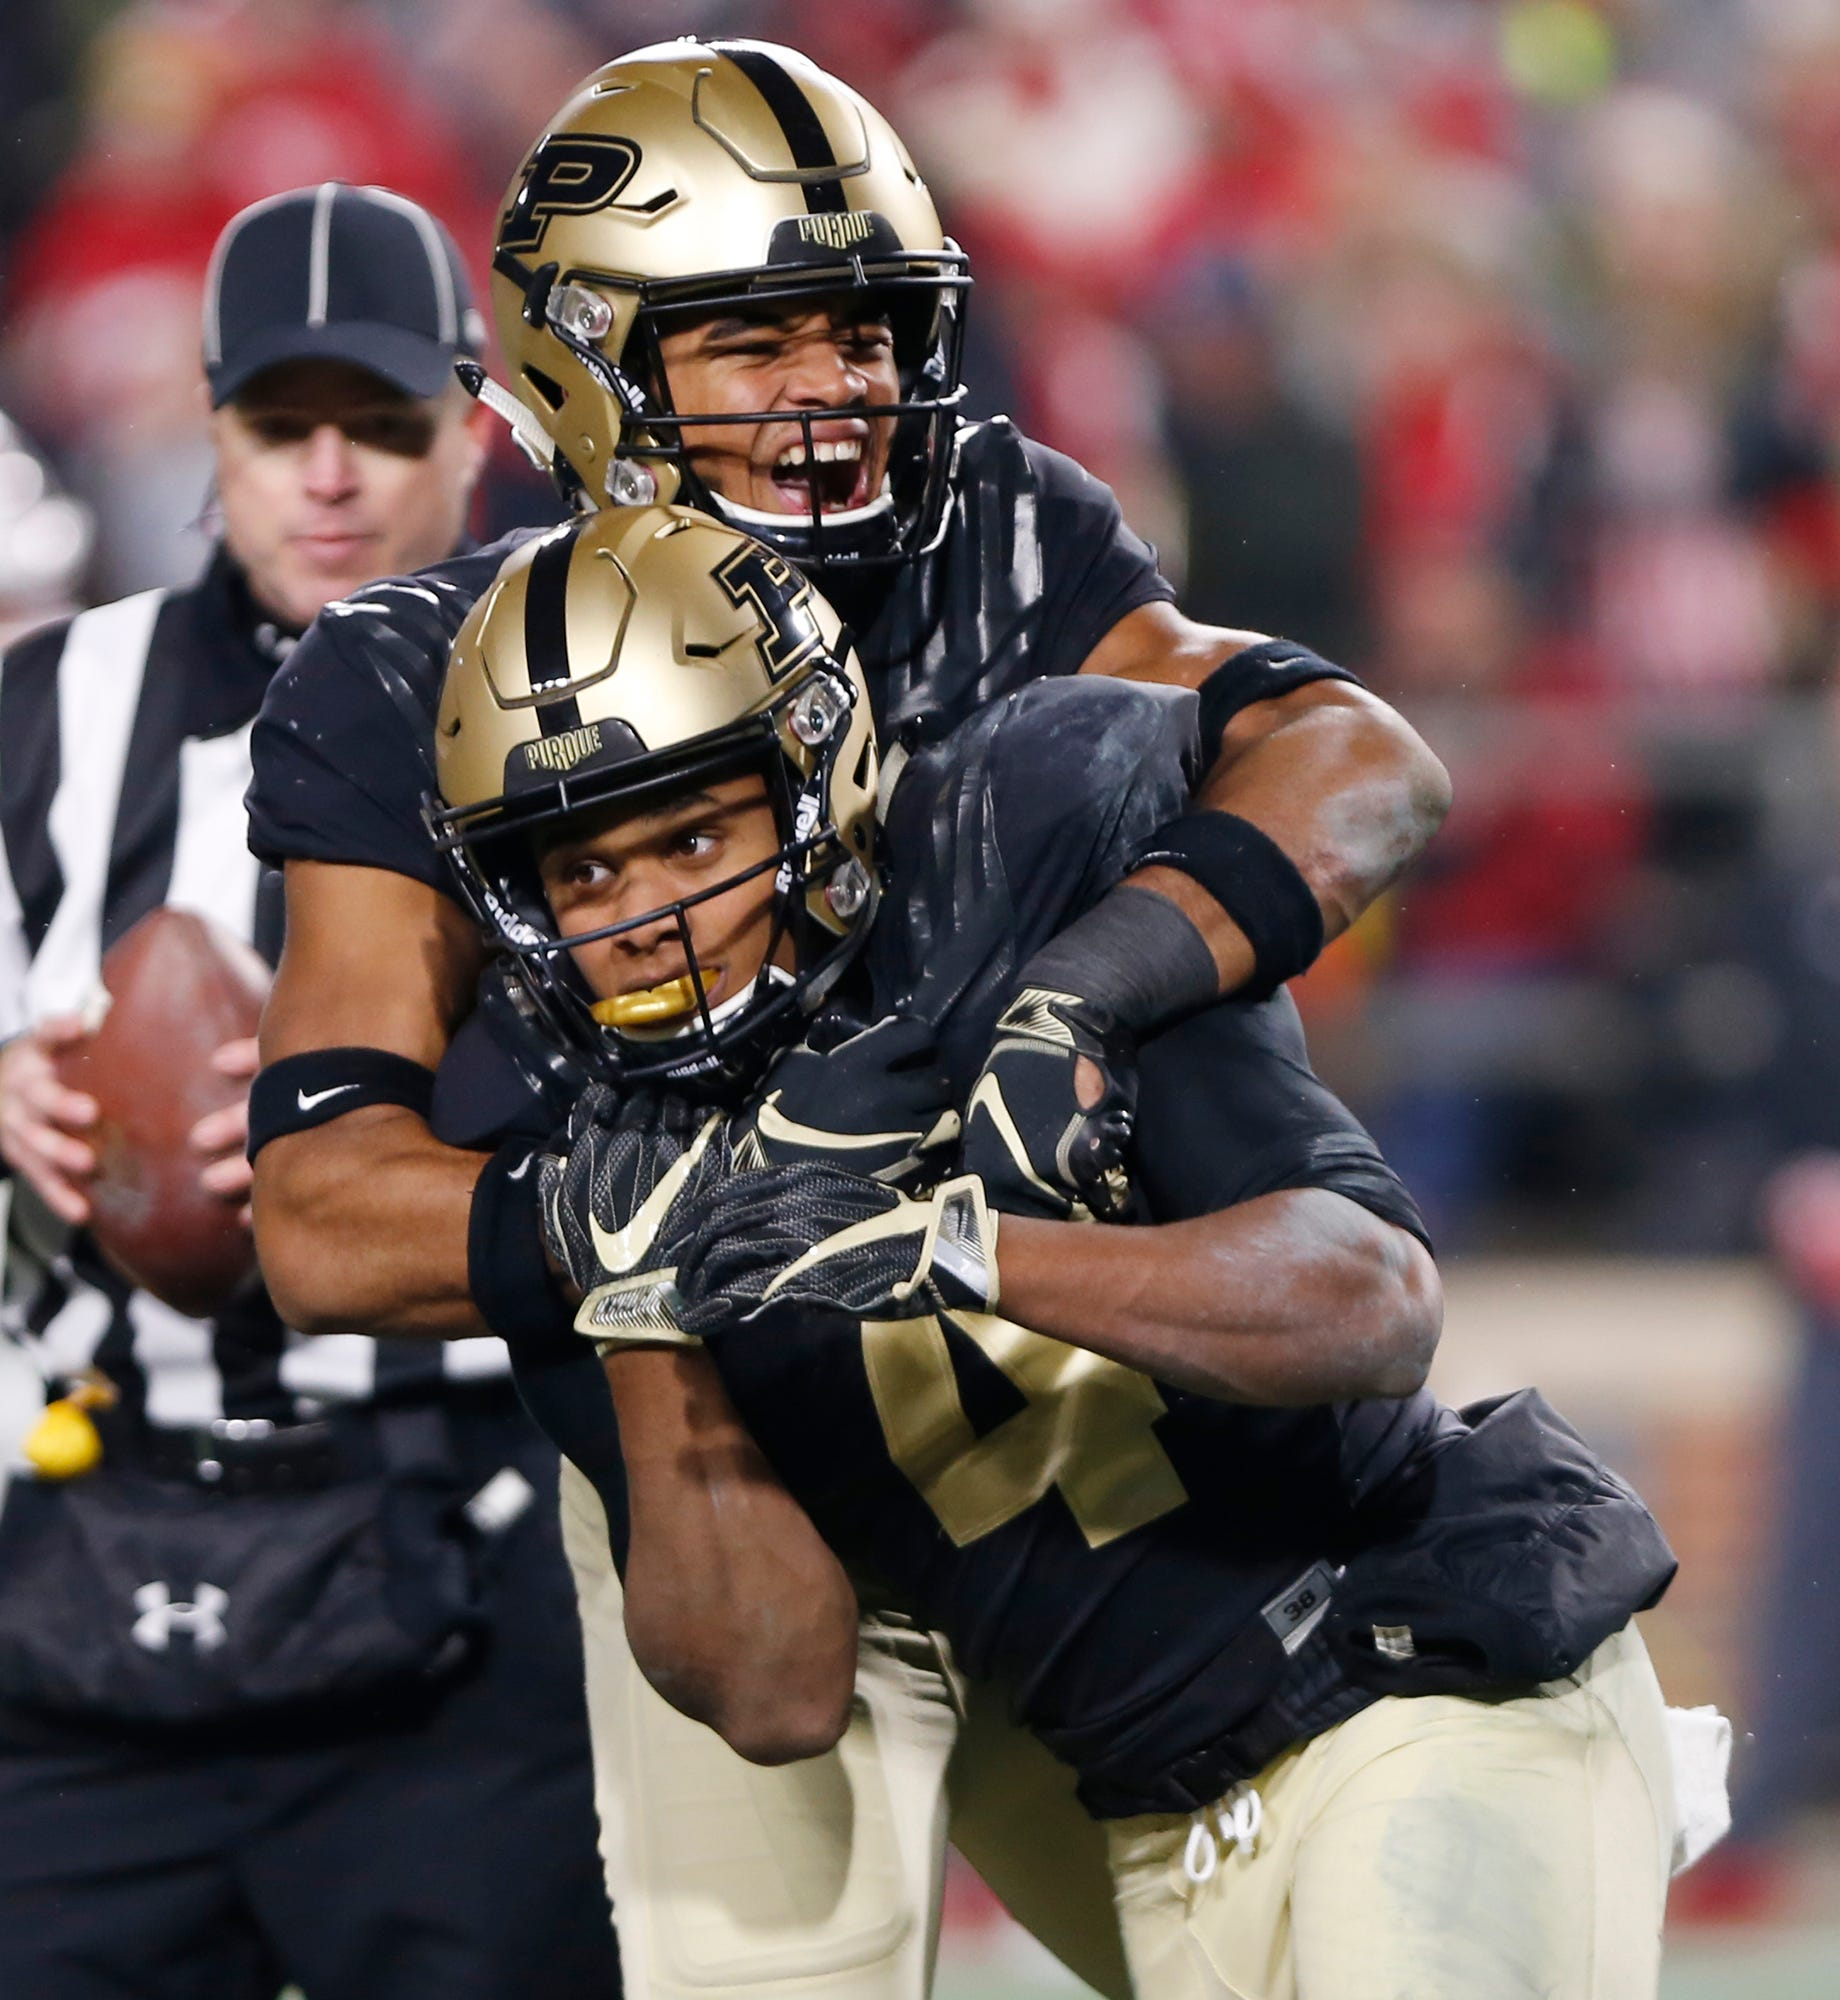 Rondale Moore, foreground, of Purdue celebrates with teammate Jared Sparks after his touchdown reception with 57 seconds remaining in the third quarter against Wisconsin.